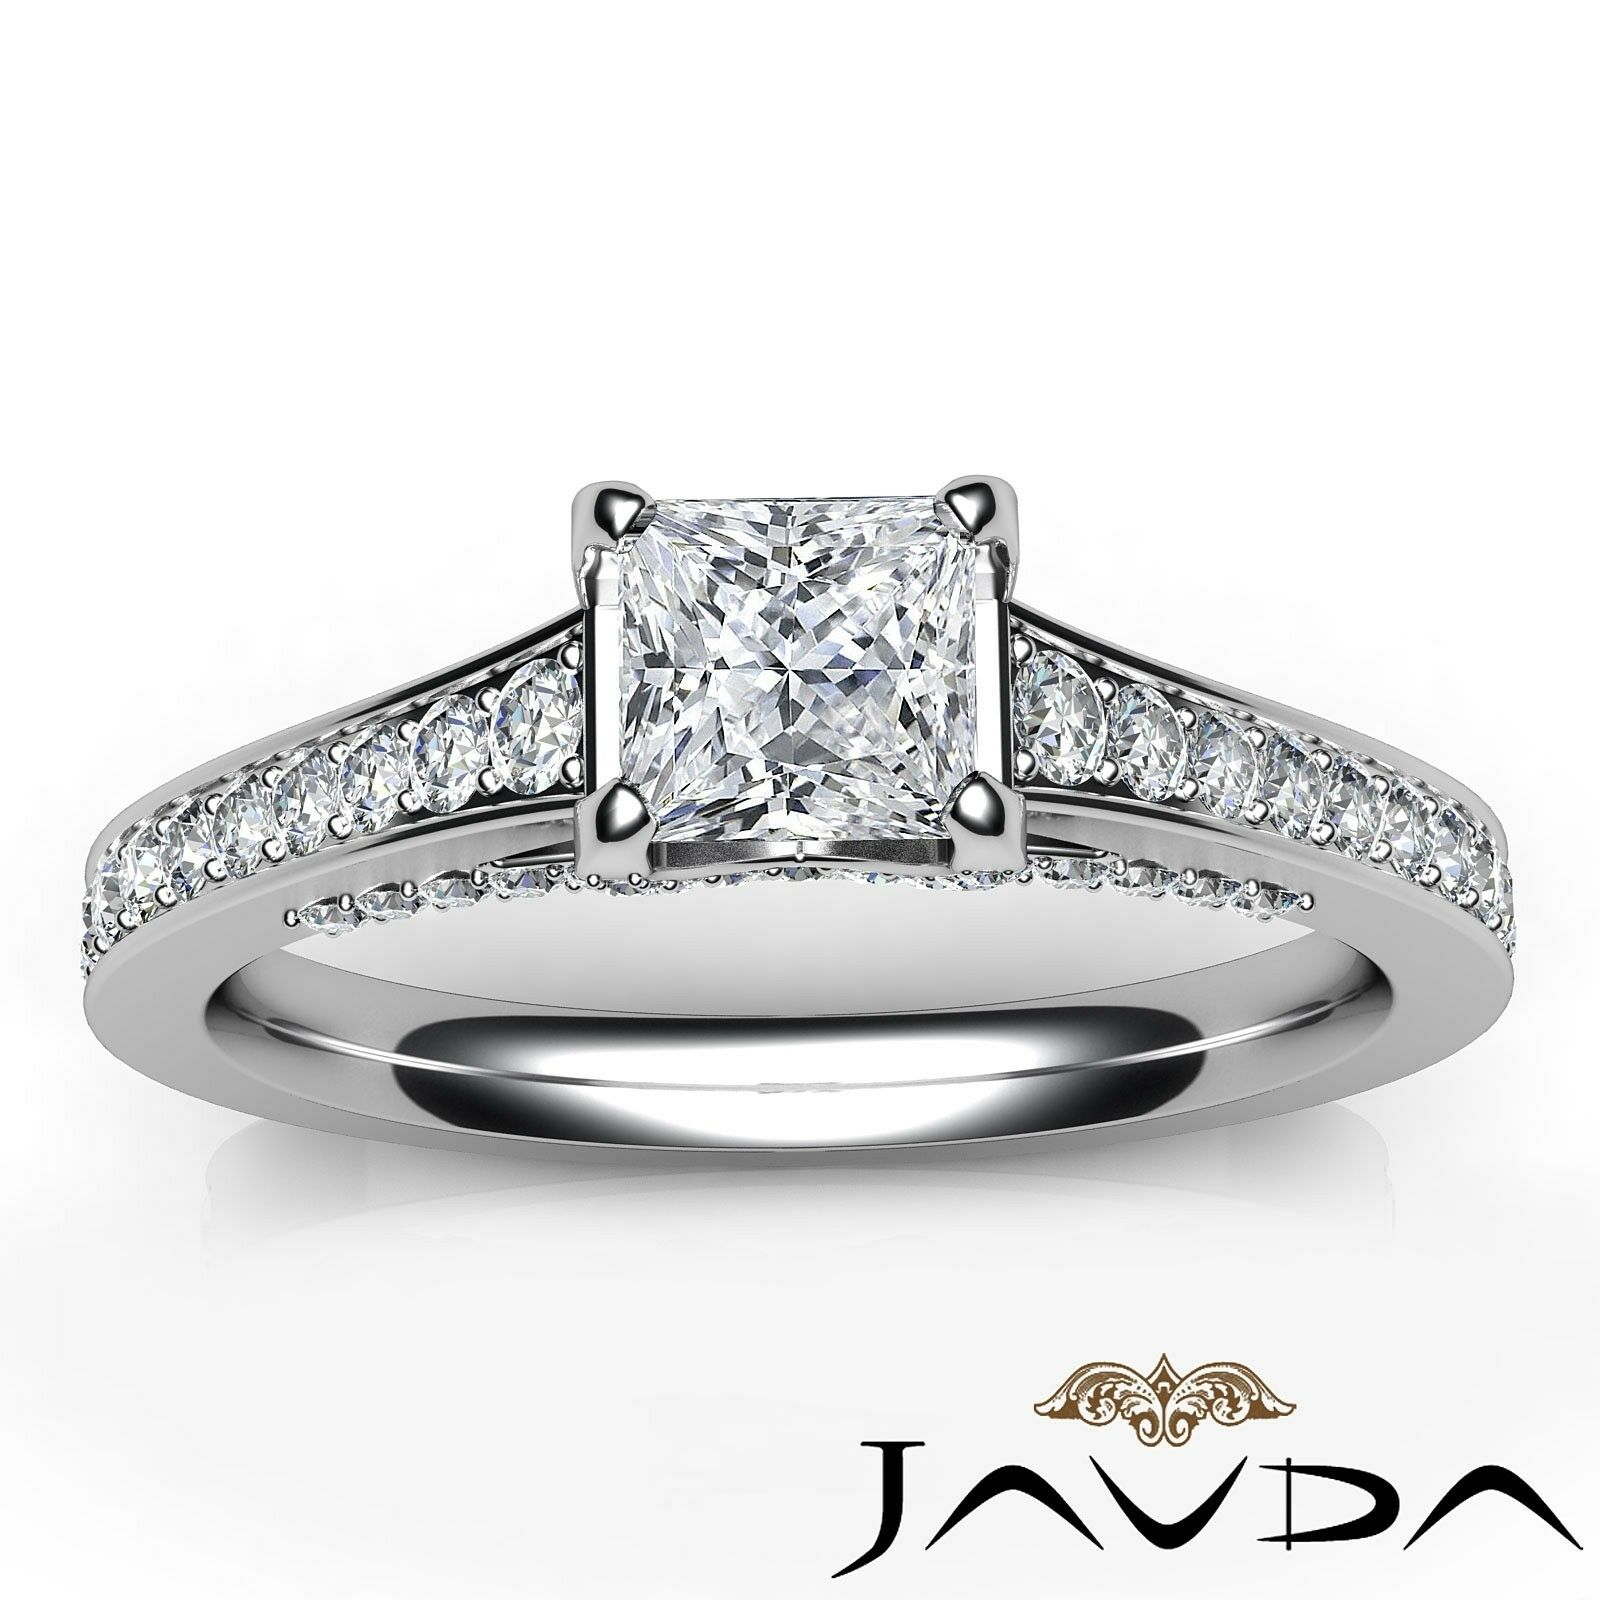 1.46ctw Tapered Pave Princess Diamond Engagement Ring GIA G-VS2 White Gold Rings 6